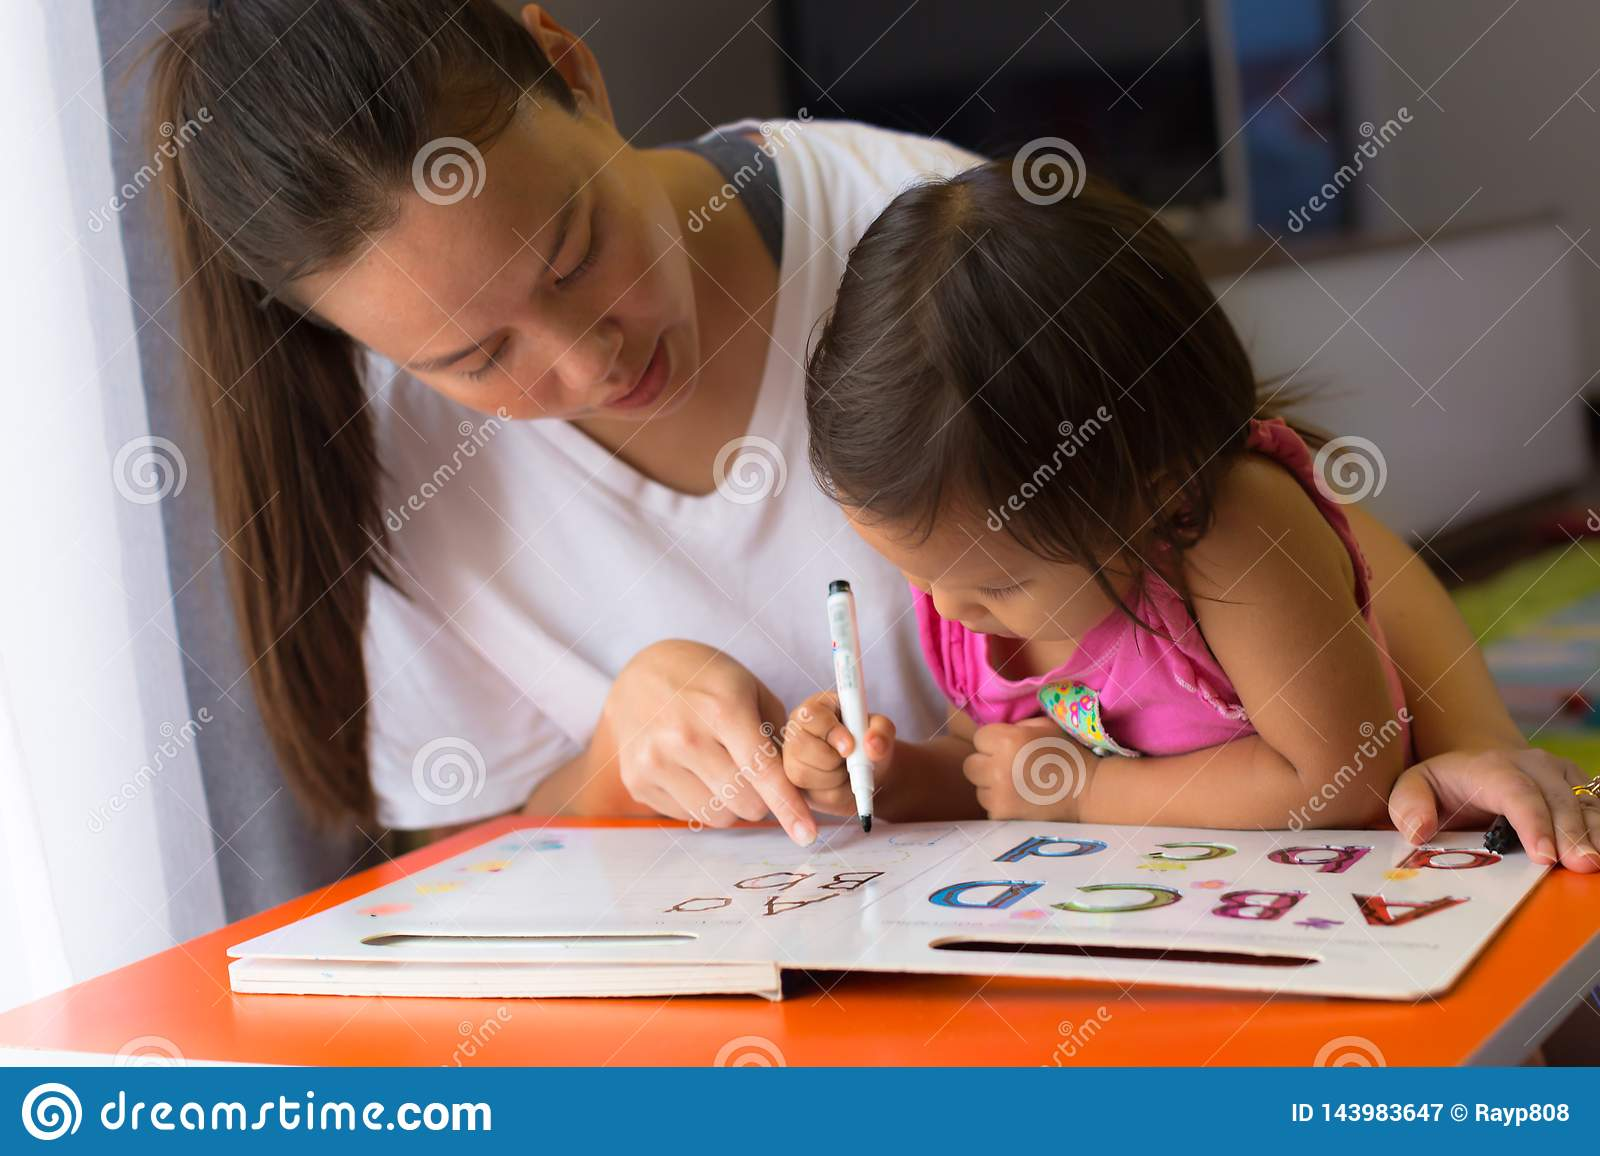 A mother teaching her child how to write the alphabets. homeschooling concept. Kids focusing and concentrating